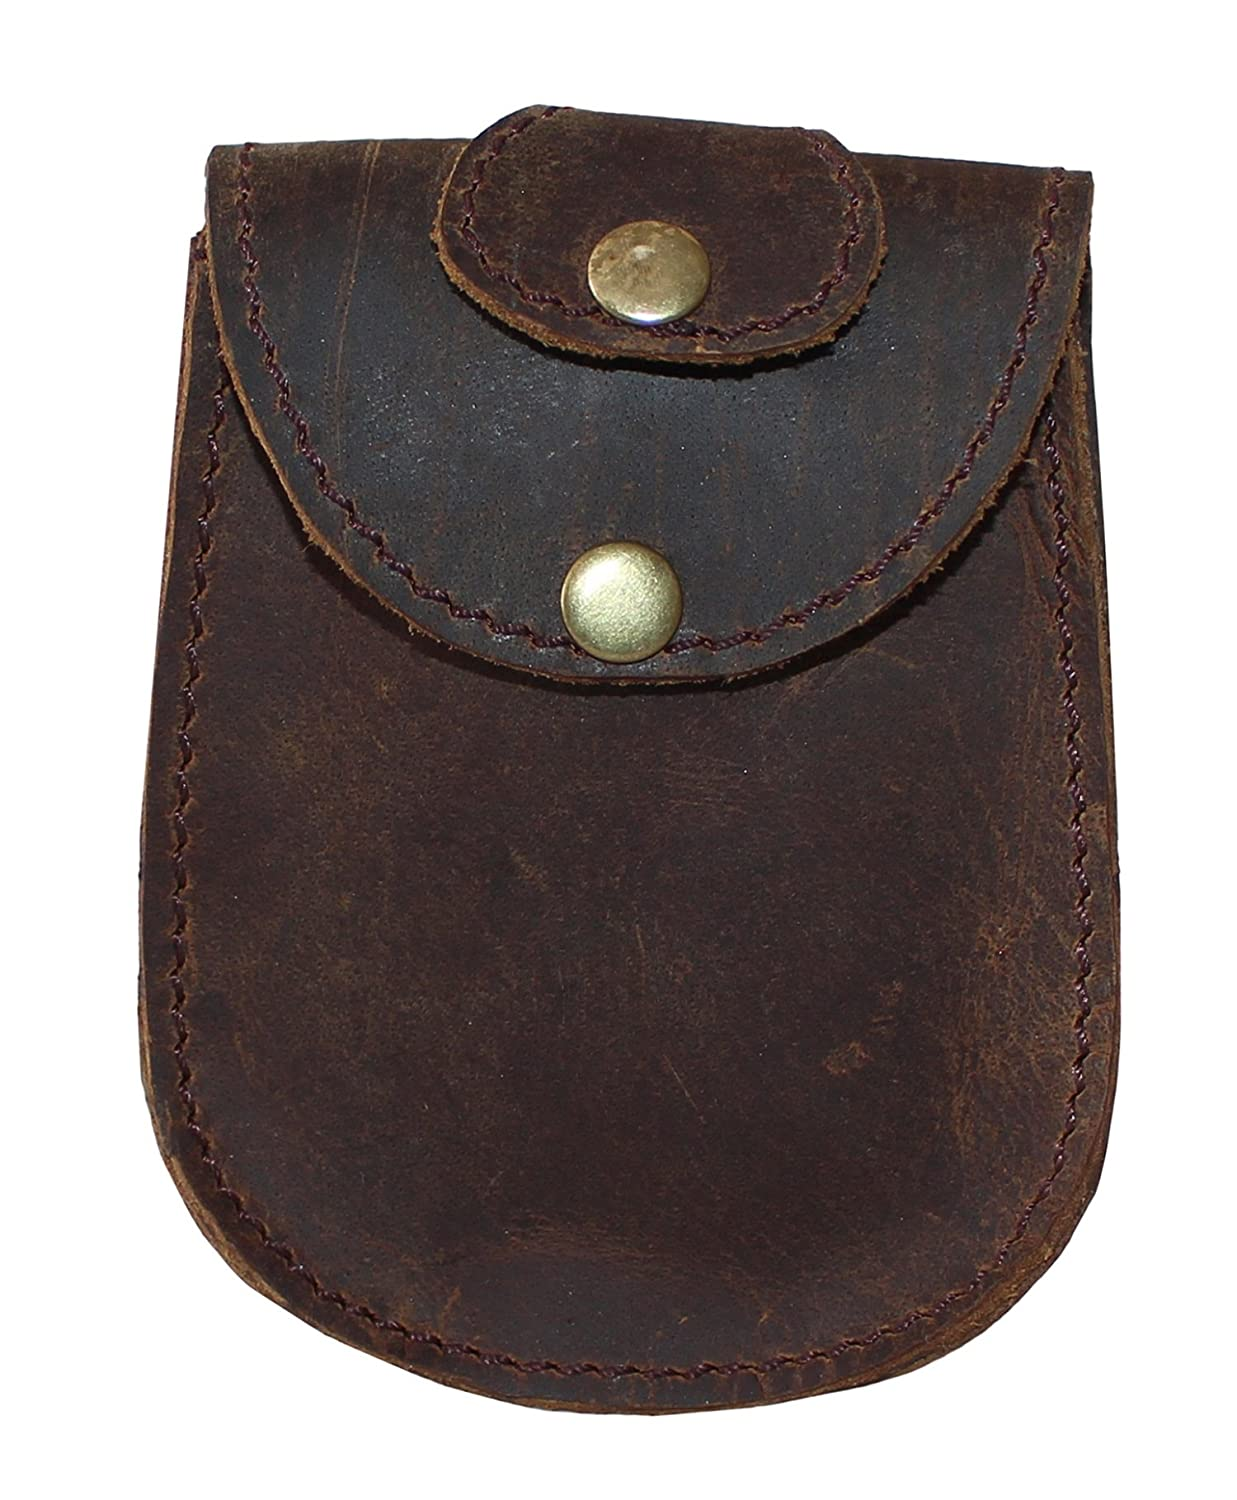 Rustic Brown Remote Key Leather Pouch with Belt Loop JYOS Leather Car//Bike Key Case Krishnaa Crafts 4347615050